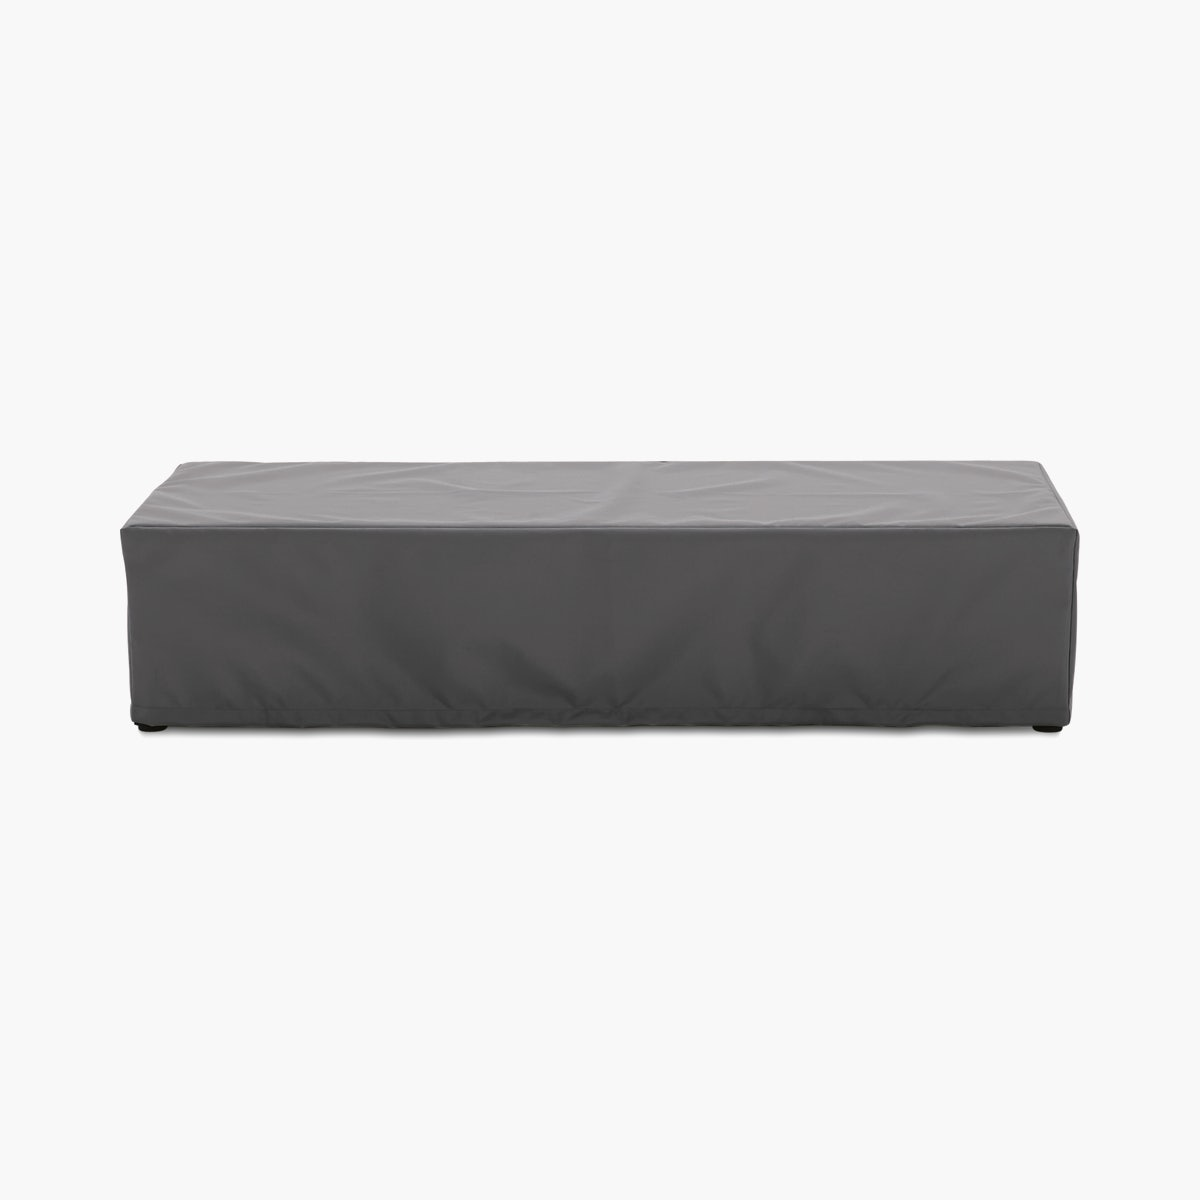 Eos Coffee Table Cover